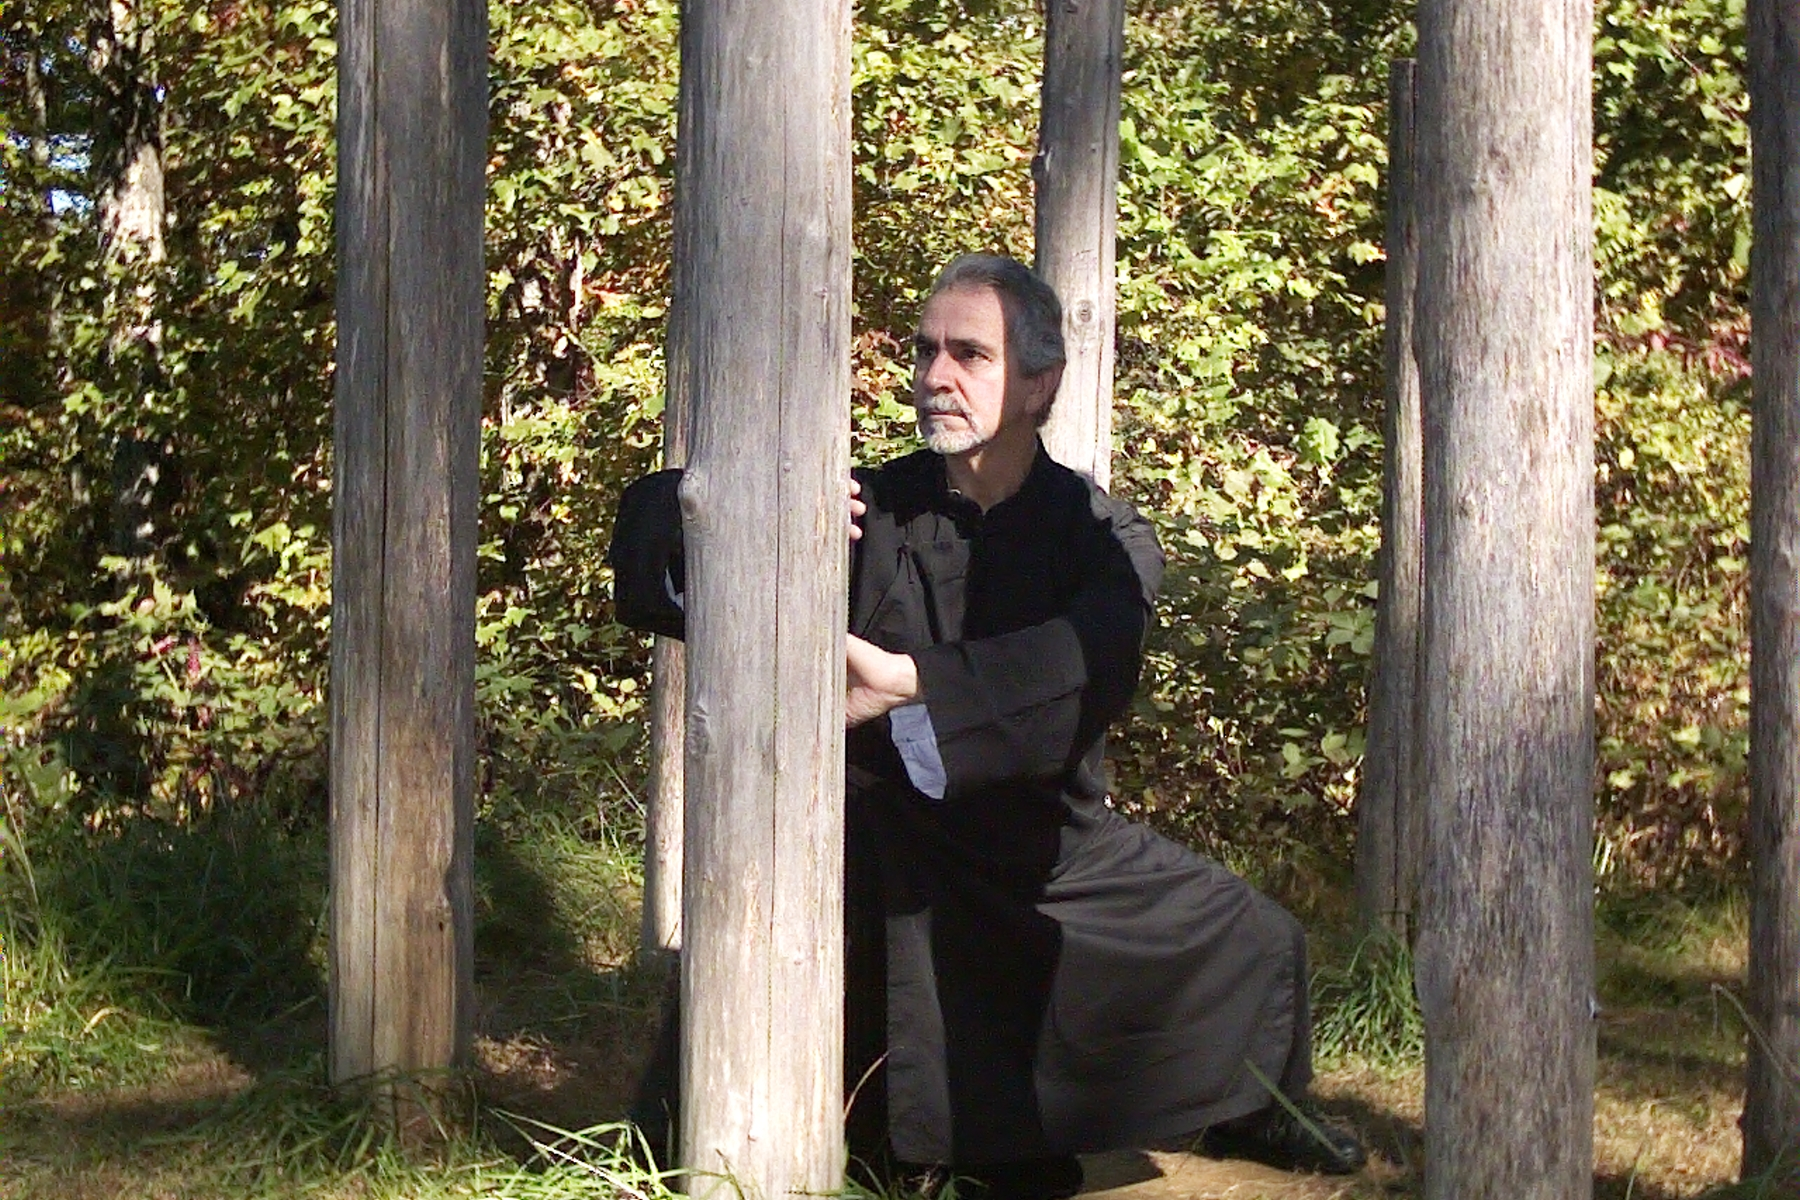 Sifu Paolillo, Entering the Forest (post training), 2005